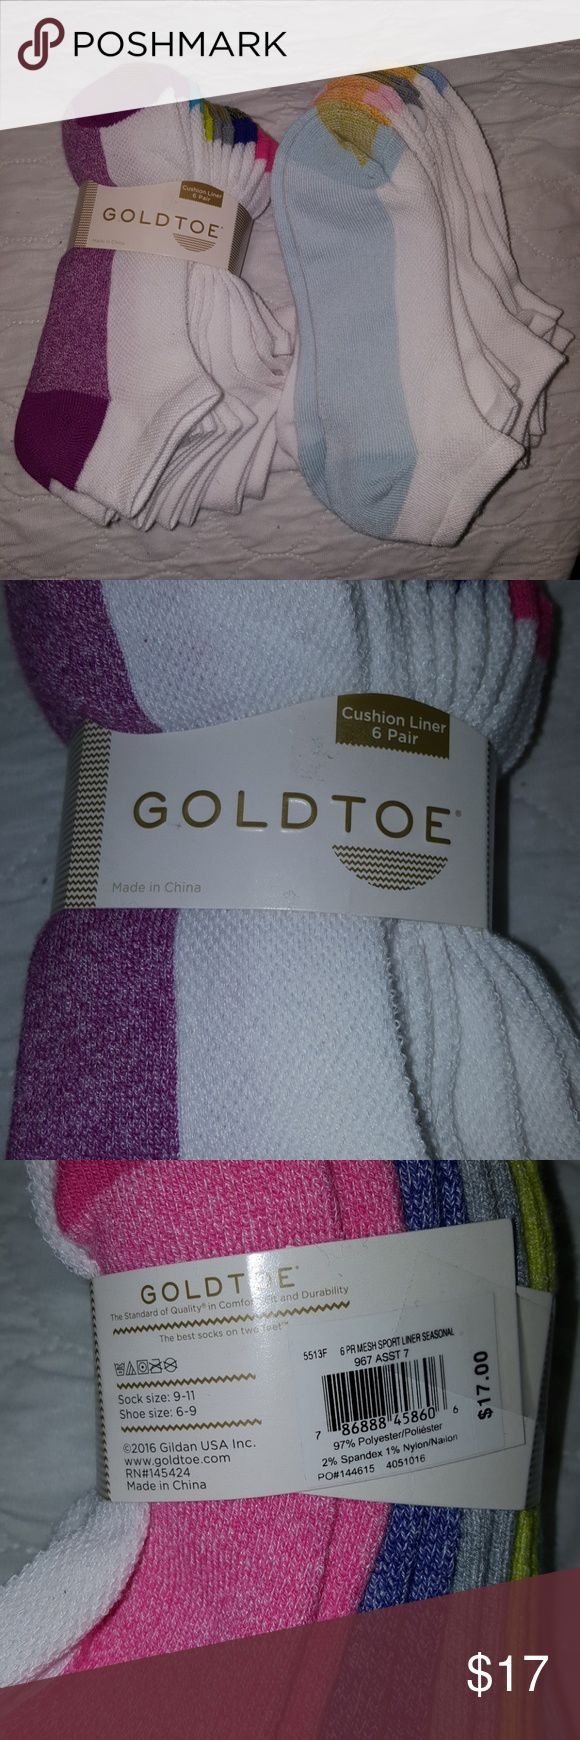 Ankle socks Two packs of Gold Toe socks. Brand new. White with color bottoms. I have too many socks. Women's shoe size 6-9. I have some of these, and they are really comfy, cushy soles. 2 packs 12 pairs in total. Gold Toe Other